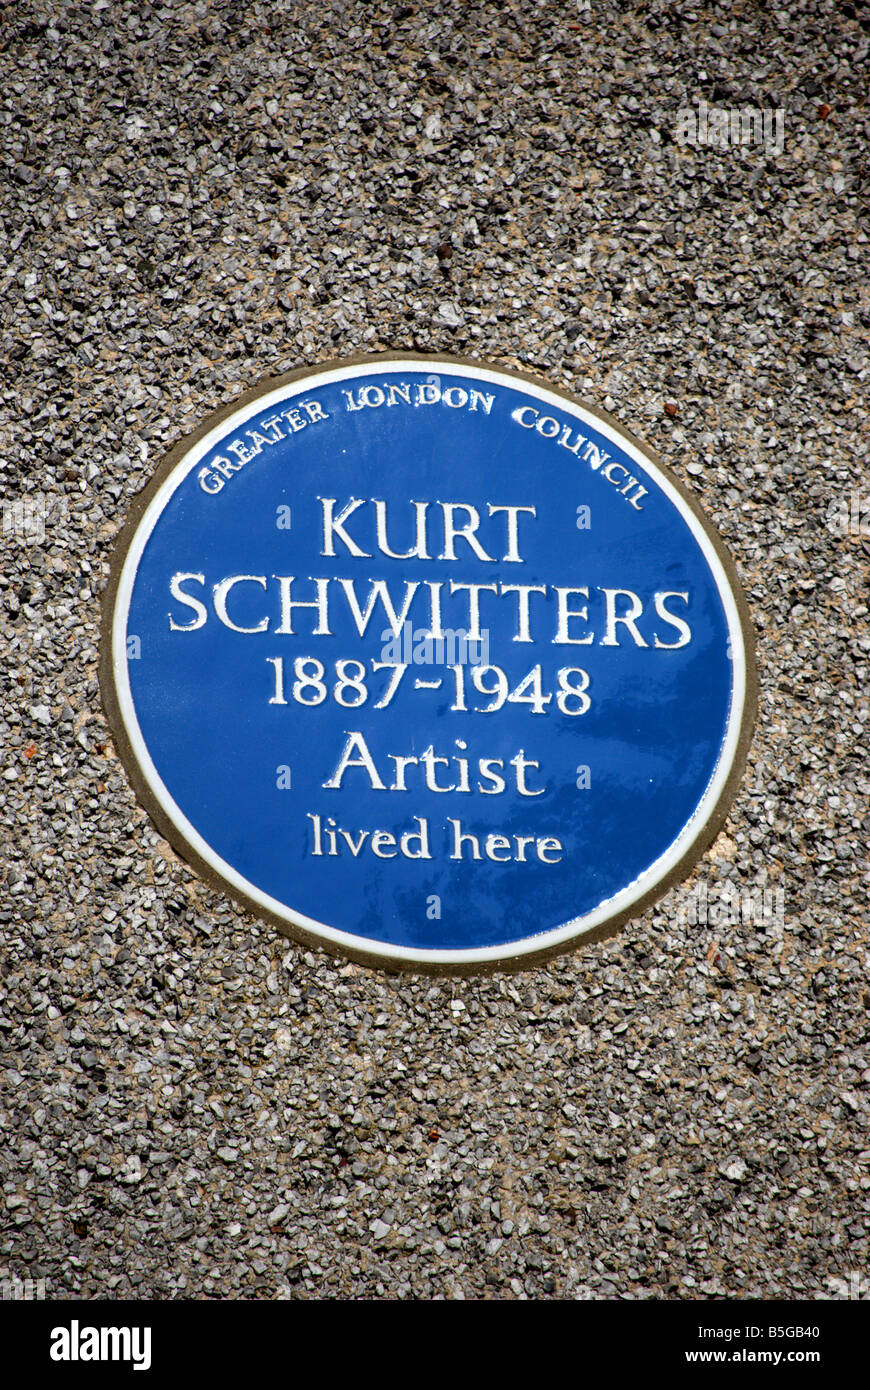 greater london council blue plaque marking a former home of german artist kurt schwitters, in barnes, london, england - Stock Image